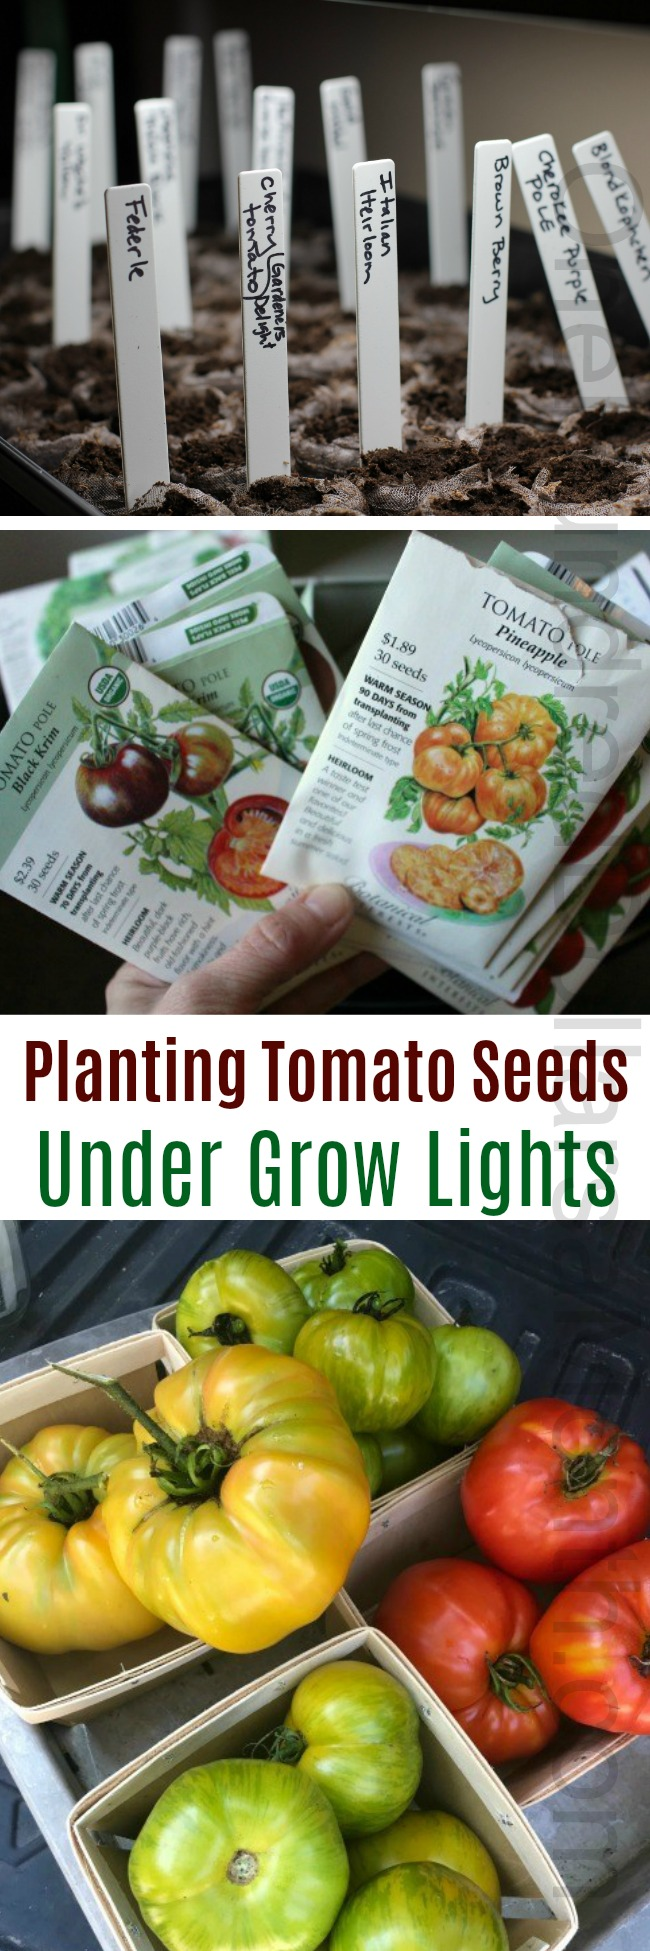 Planting Tomato Seeds With Grow Lights